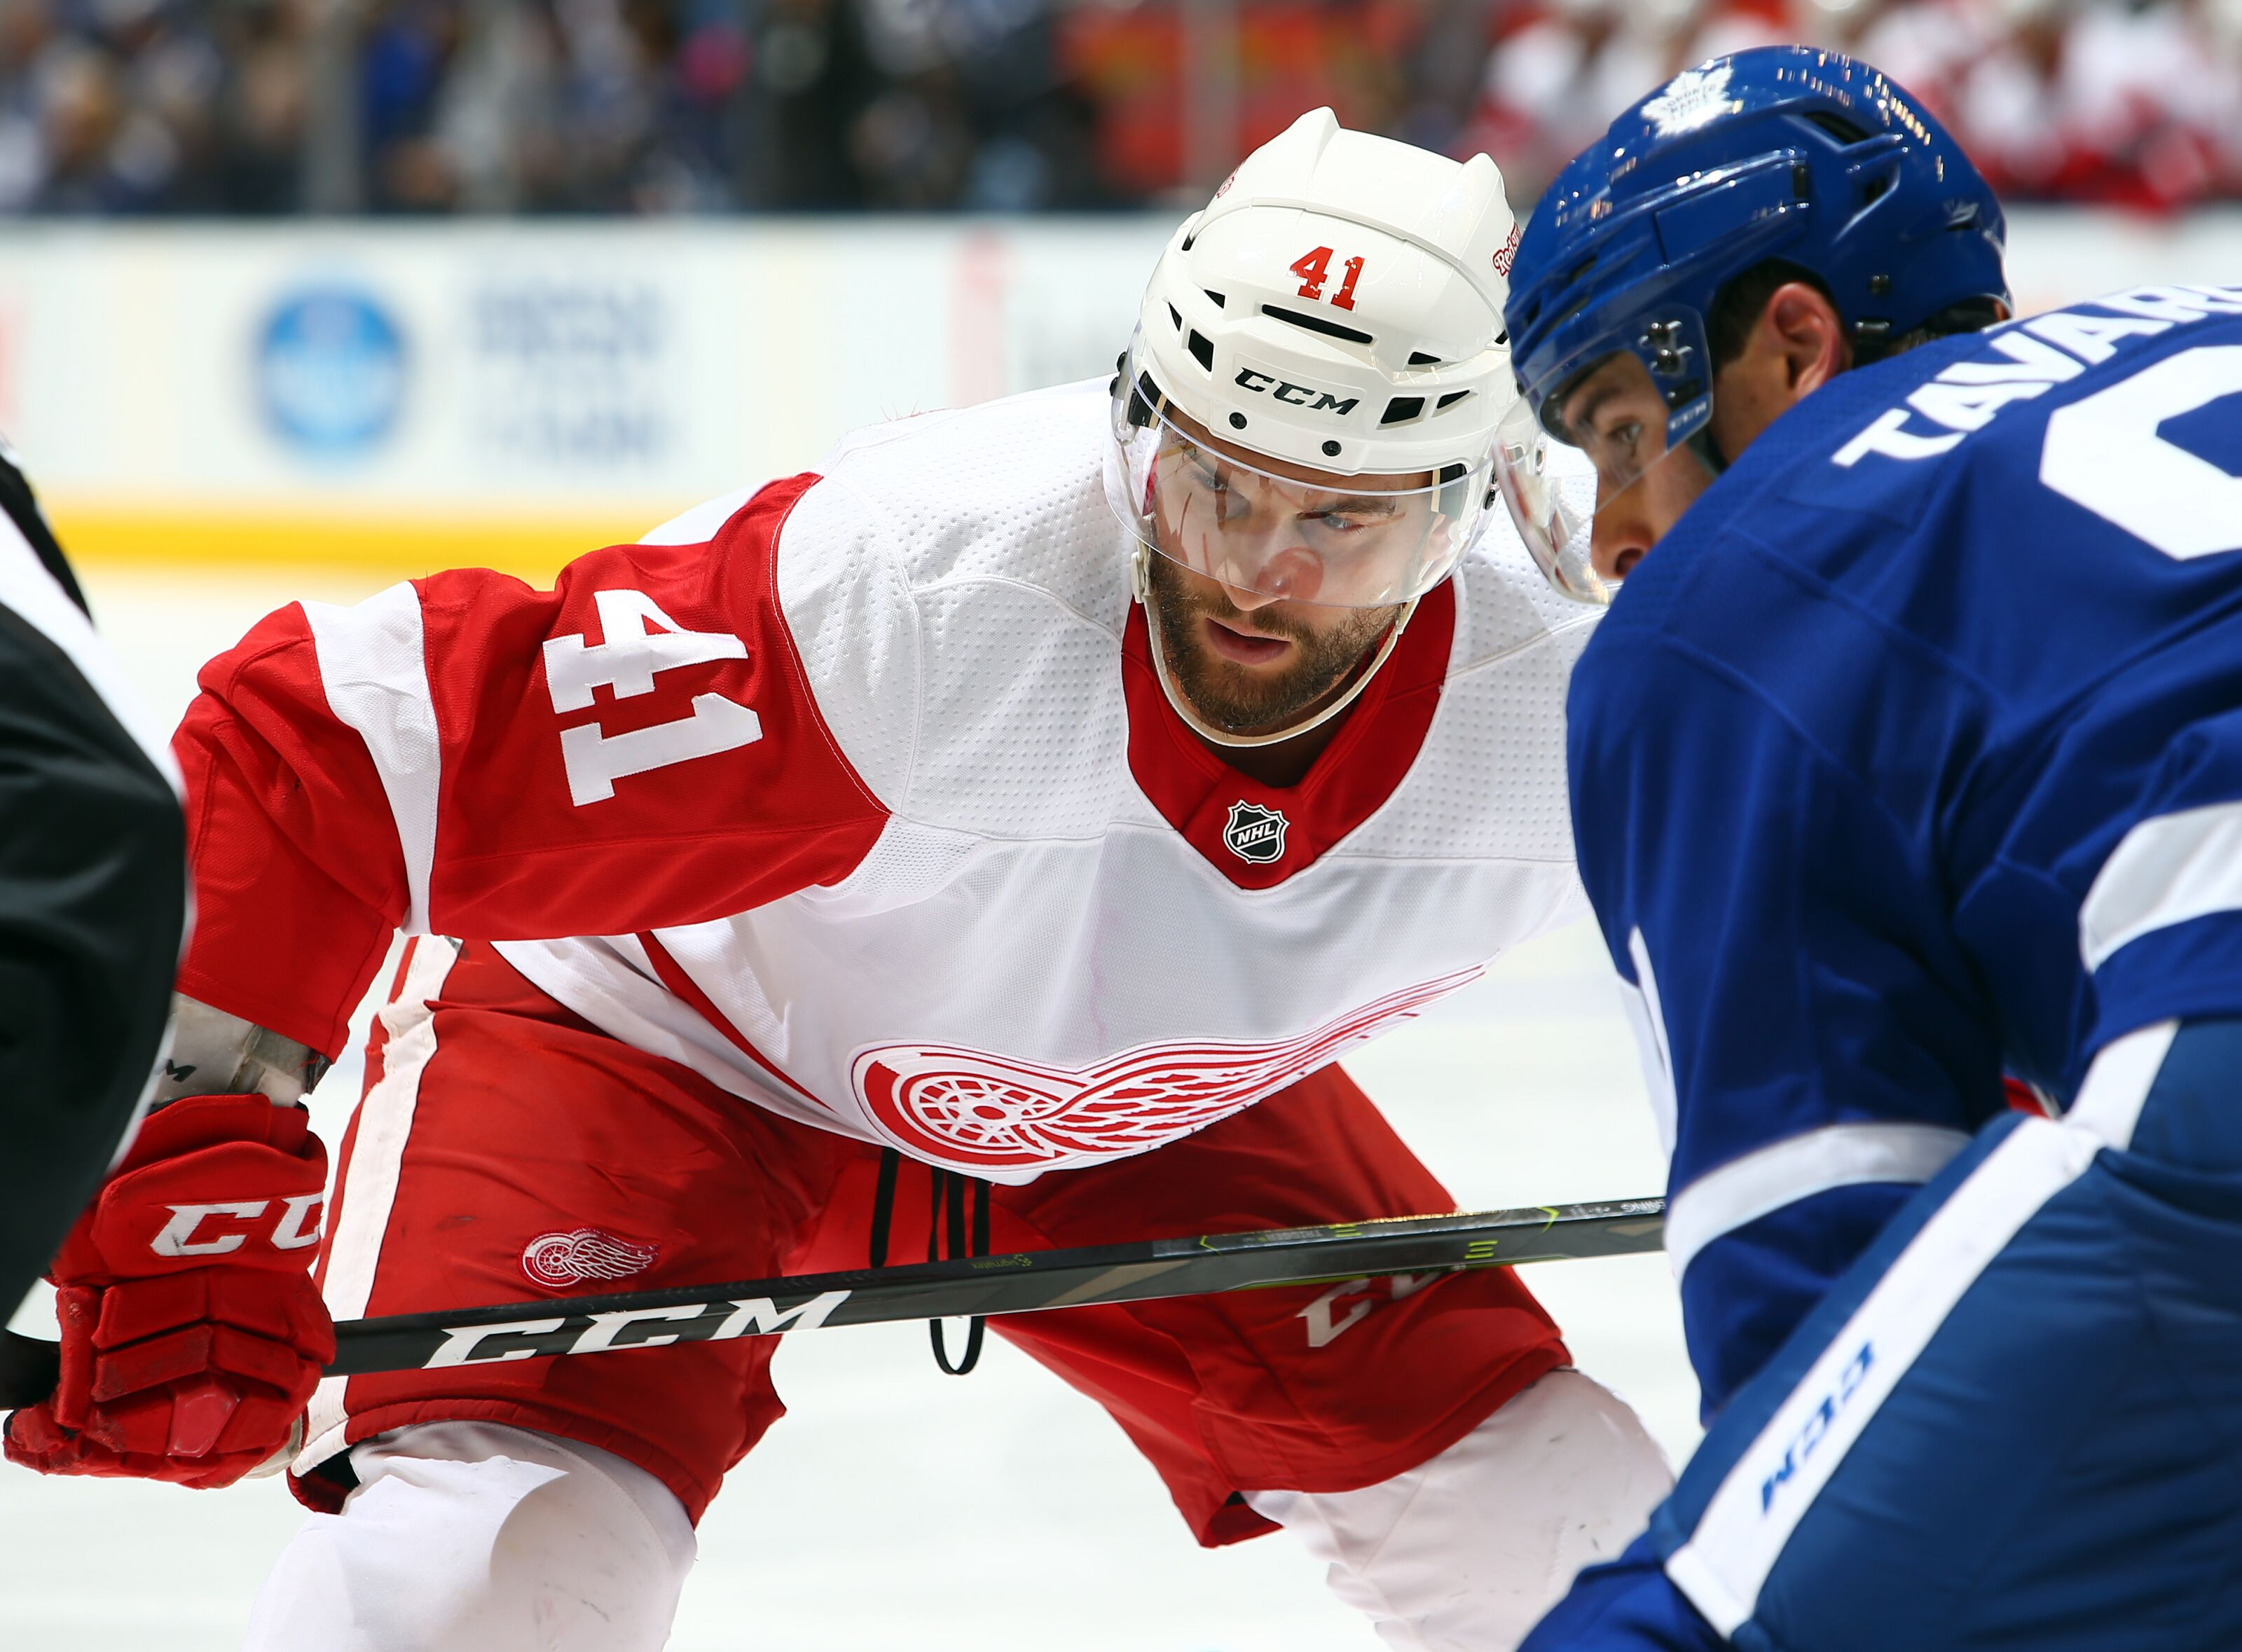 Red Wings: Please remove Luke Glendening from the top line